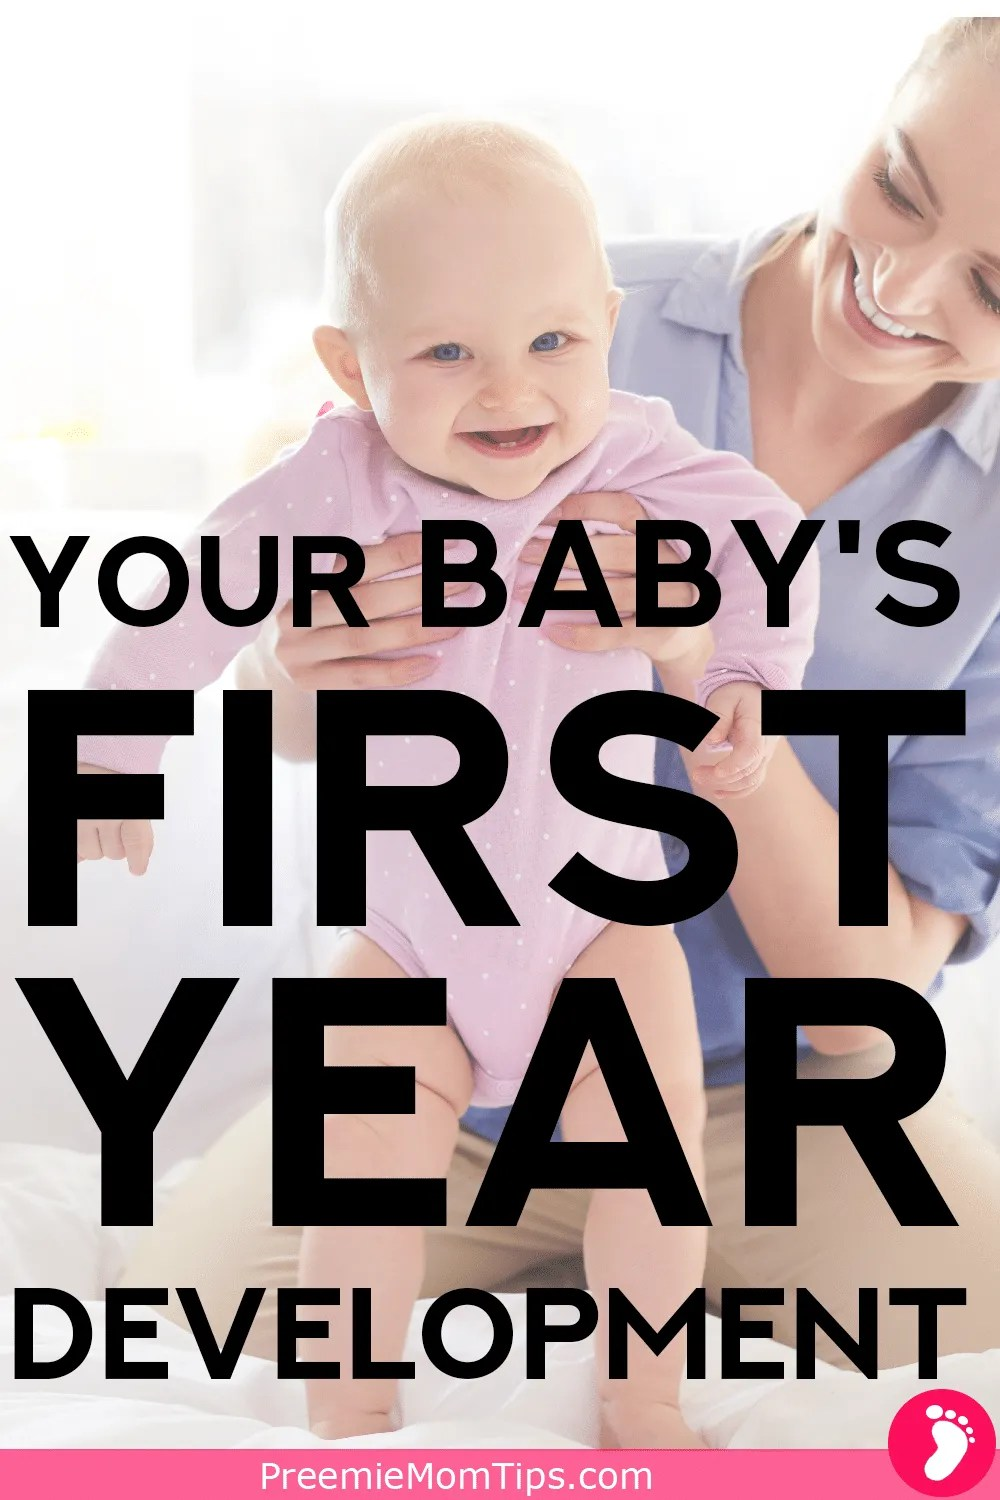 Be on top of your baby's development with this milestone guide from newborn to 12 months. Month by month milestones, and trivia!